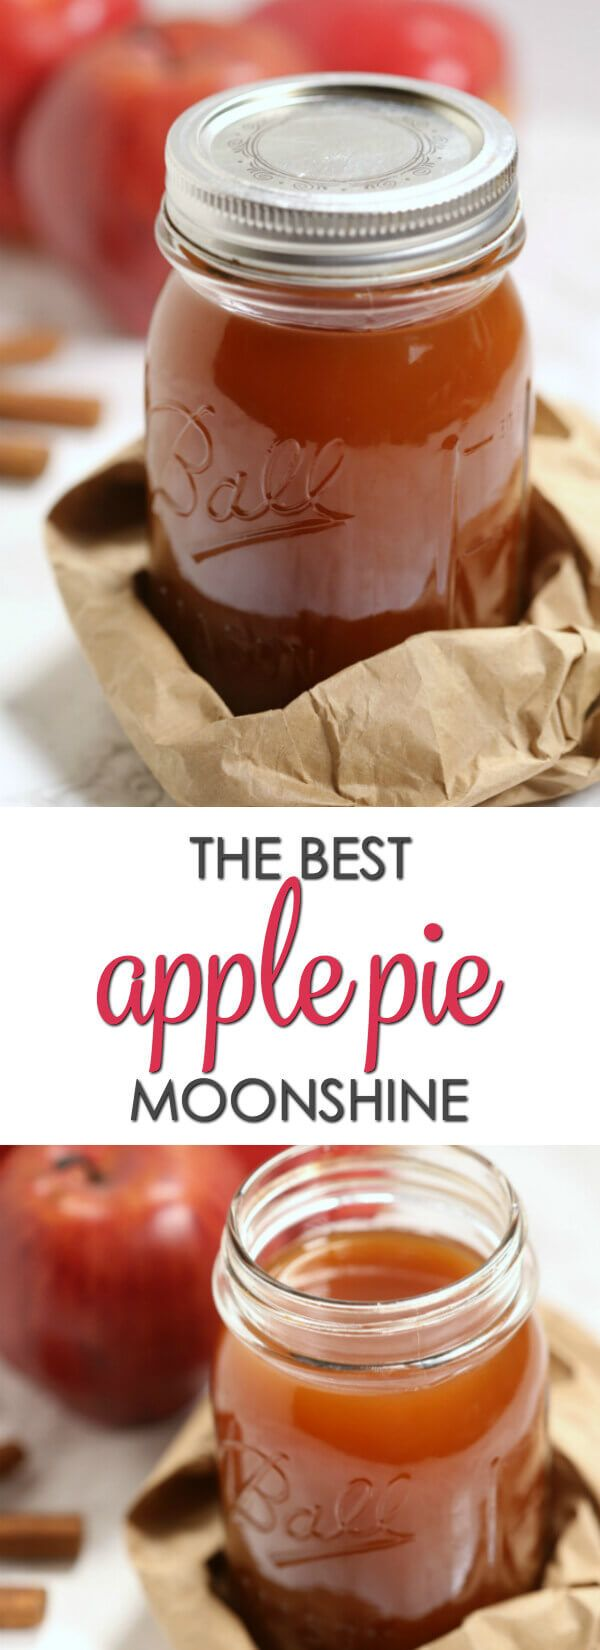 This is the bestApple Pie Moonshine recipe. Made with apple cider and Everclear grain alcohol, it packs a punch but still it's smooth andbursting with apple cinnamon flavor.#itisakeeper #recipe #moonshine via @itsakeeperblog